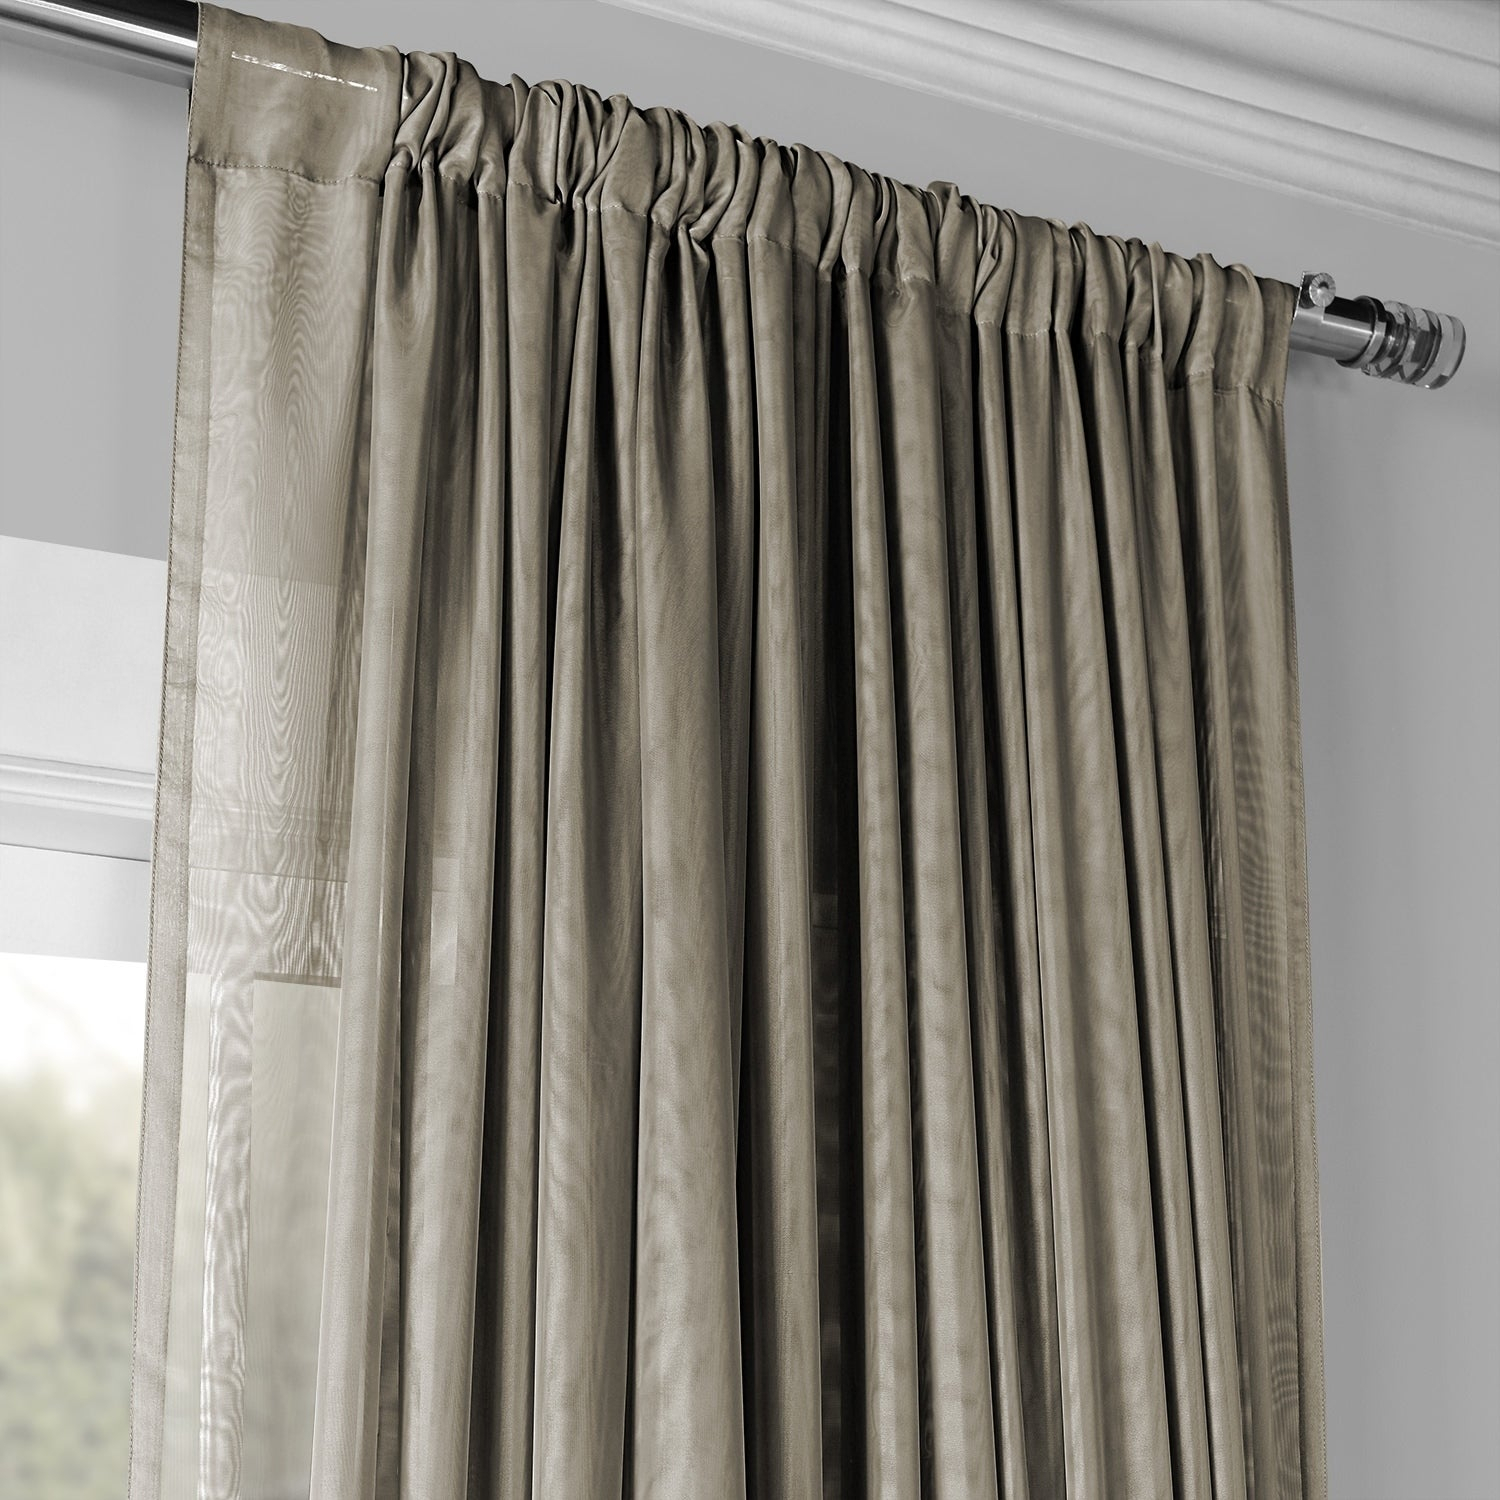 Exclusive Fabrics Signature Extrawide Double Layer Sheer Curtain Panel Intended For Signature White Double Layer Sheer Curtain Panels (View 9 of 30)